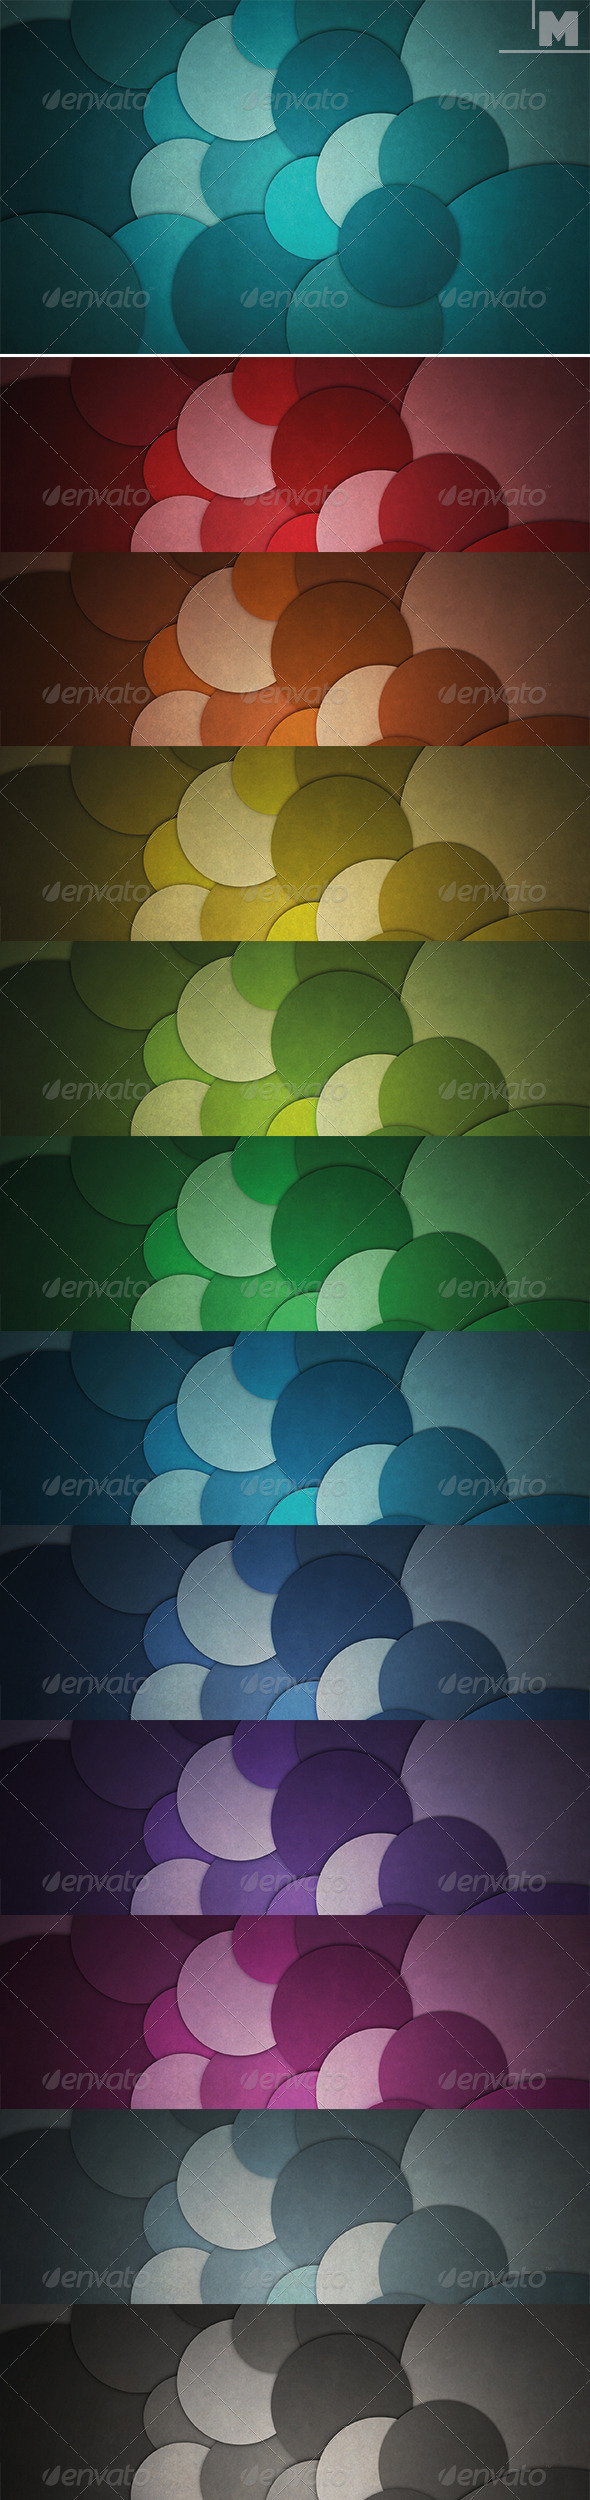 GraphicRiver Abstract Circles Backgrounds 7864843